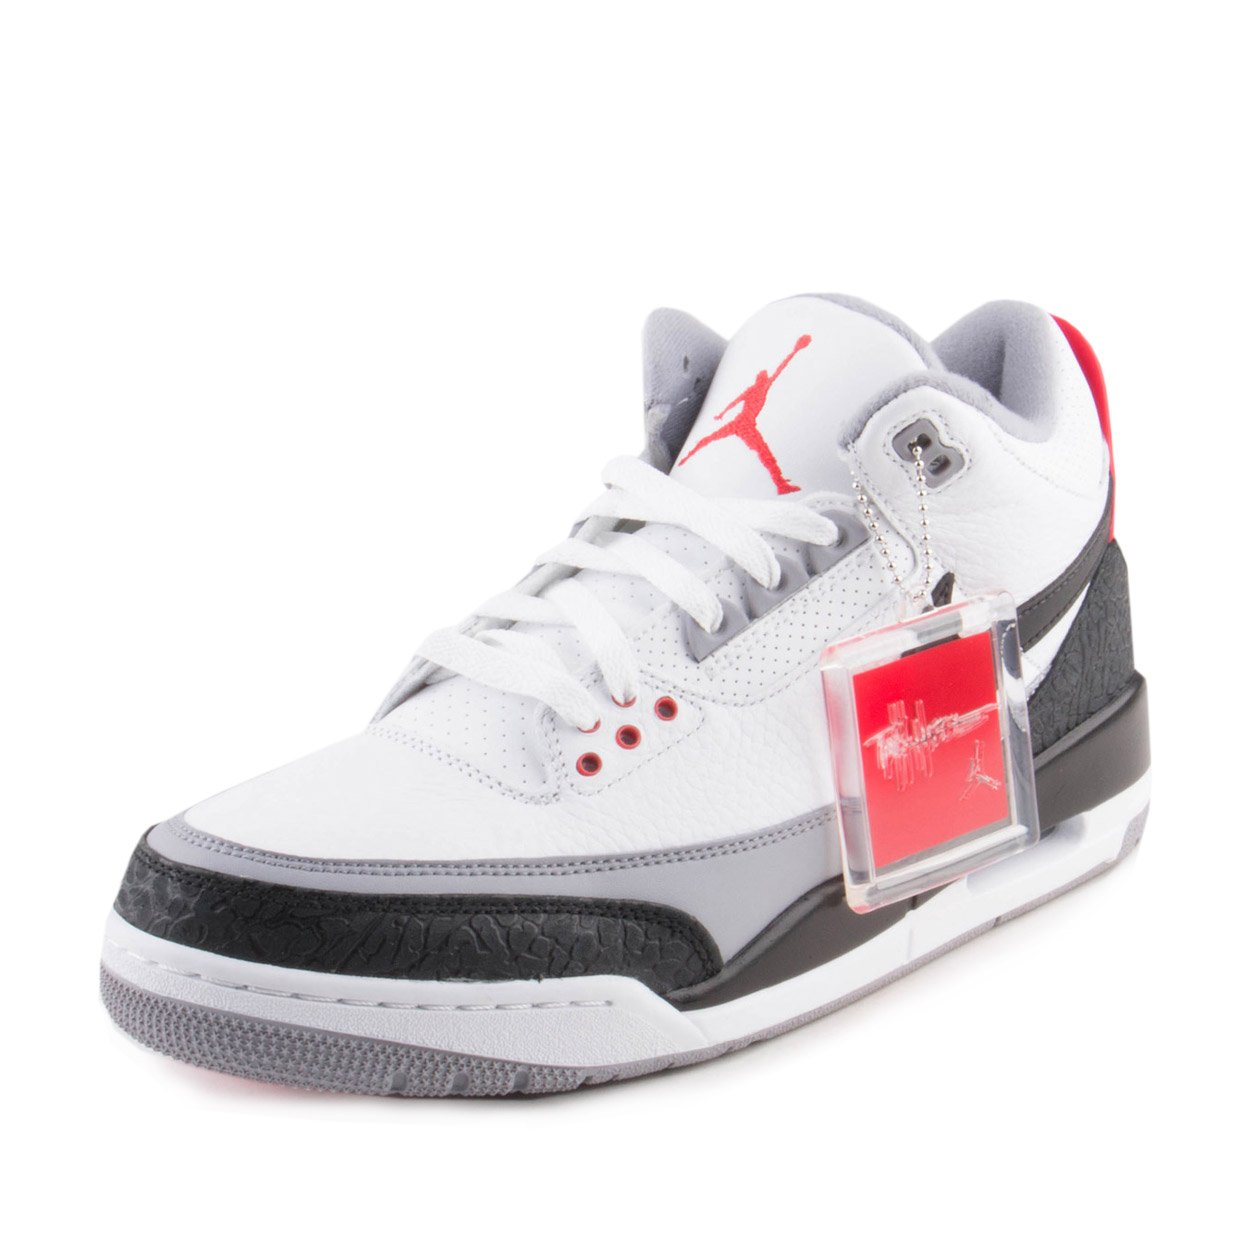 NIKE Mens Air Jordan 3 Retro Tinker NRG White/Black/Fire Red Leather Size 11.5